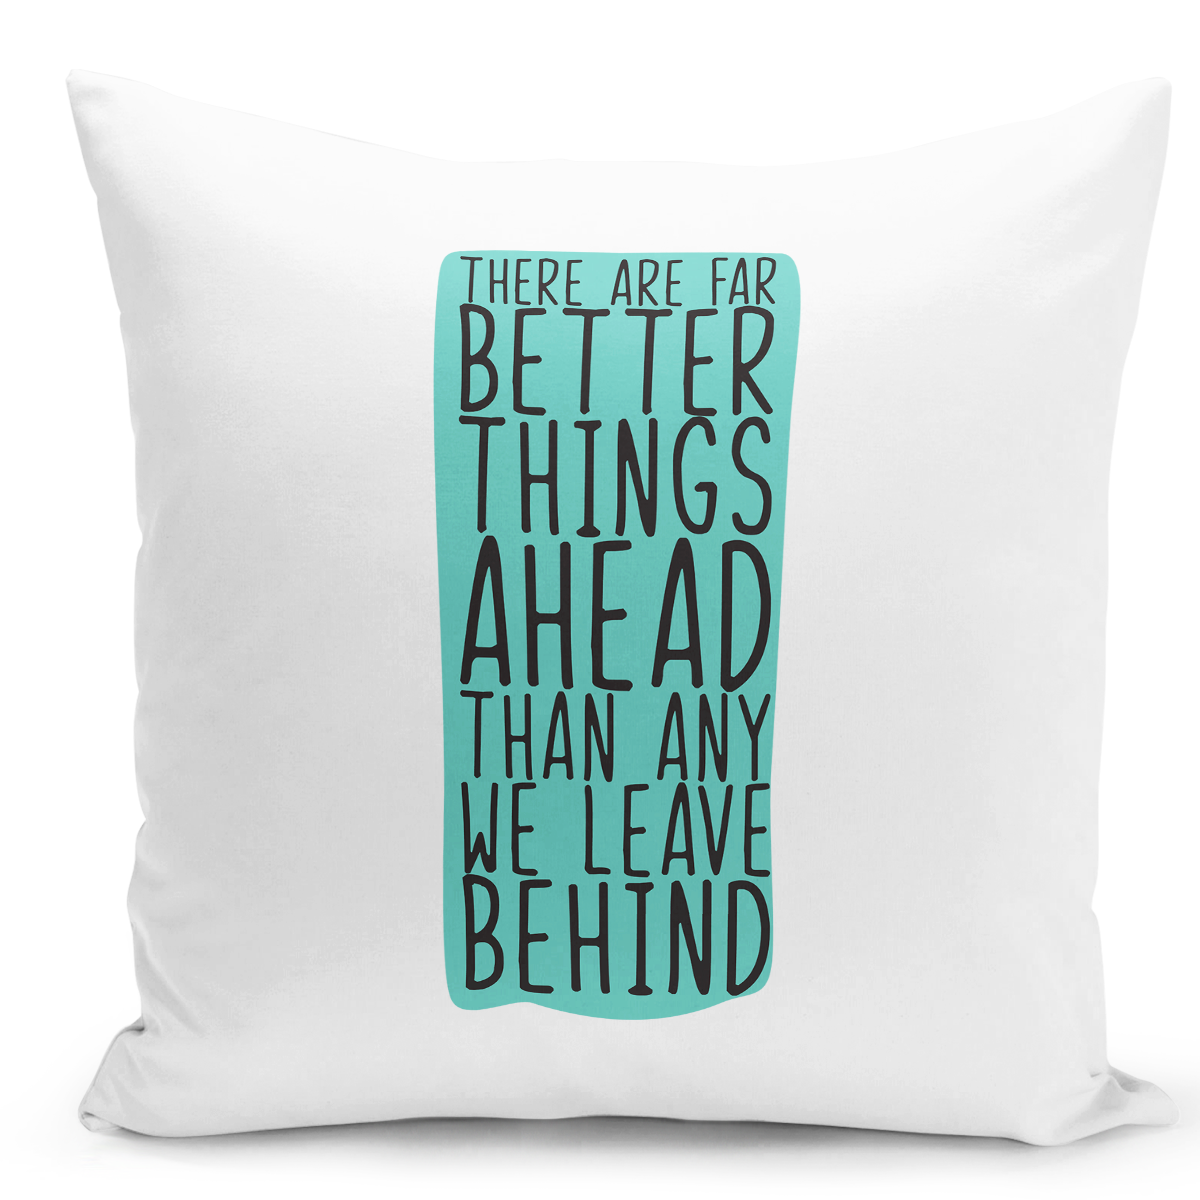 16x16-inch-Throw-Pillow-for-Home-Decor-with-Stuffing-Look-Ahead-Leave-Behind-Positive-Message-Quote-Pillow-With-Words-